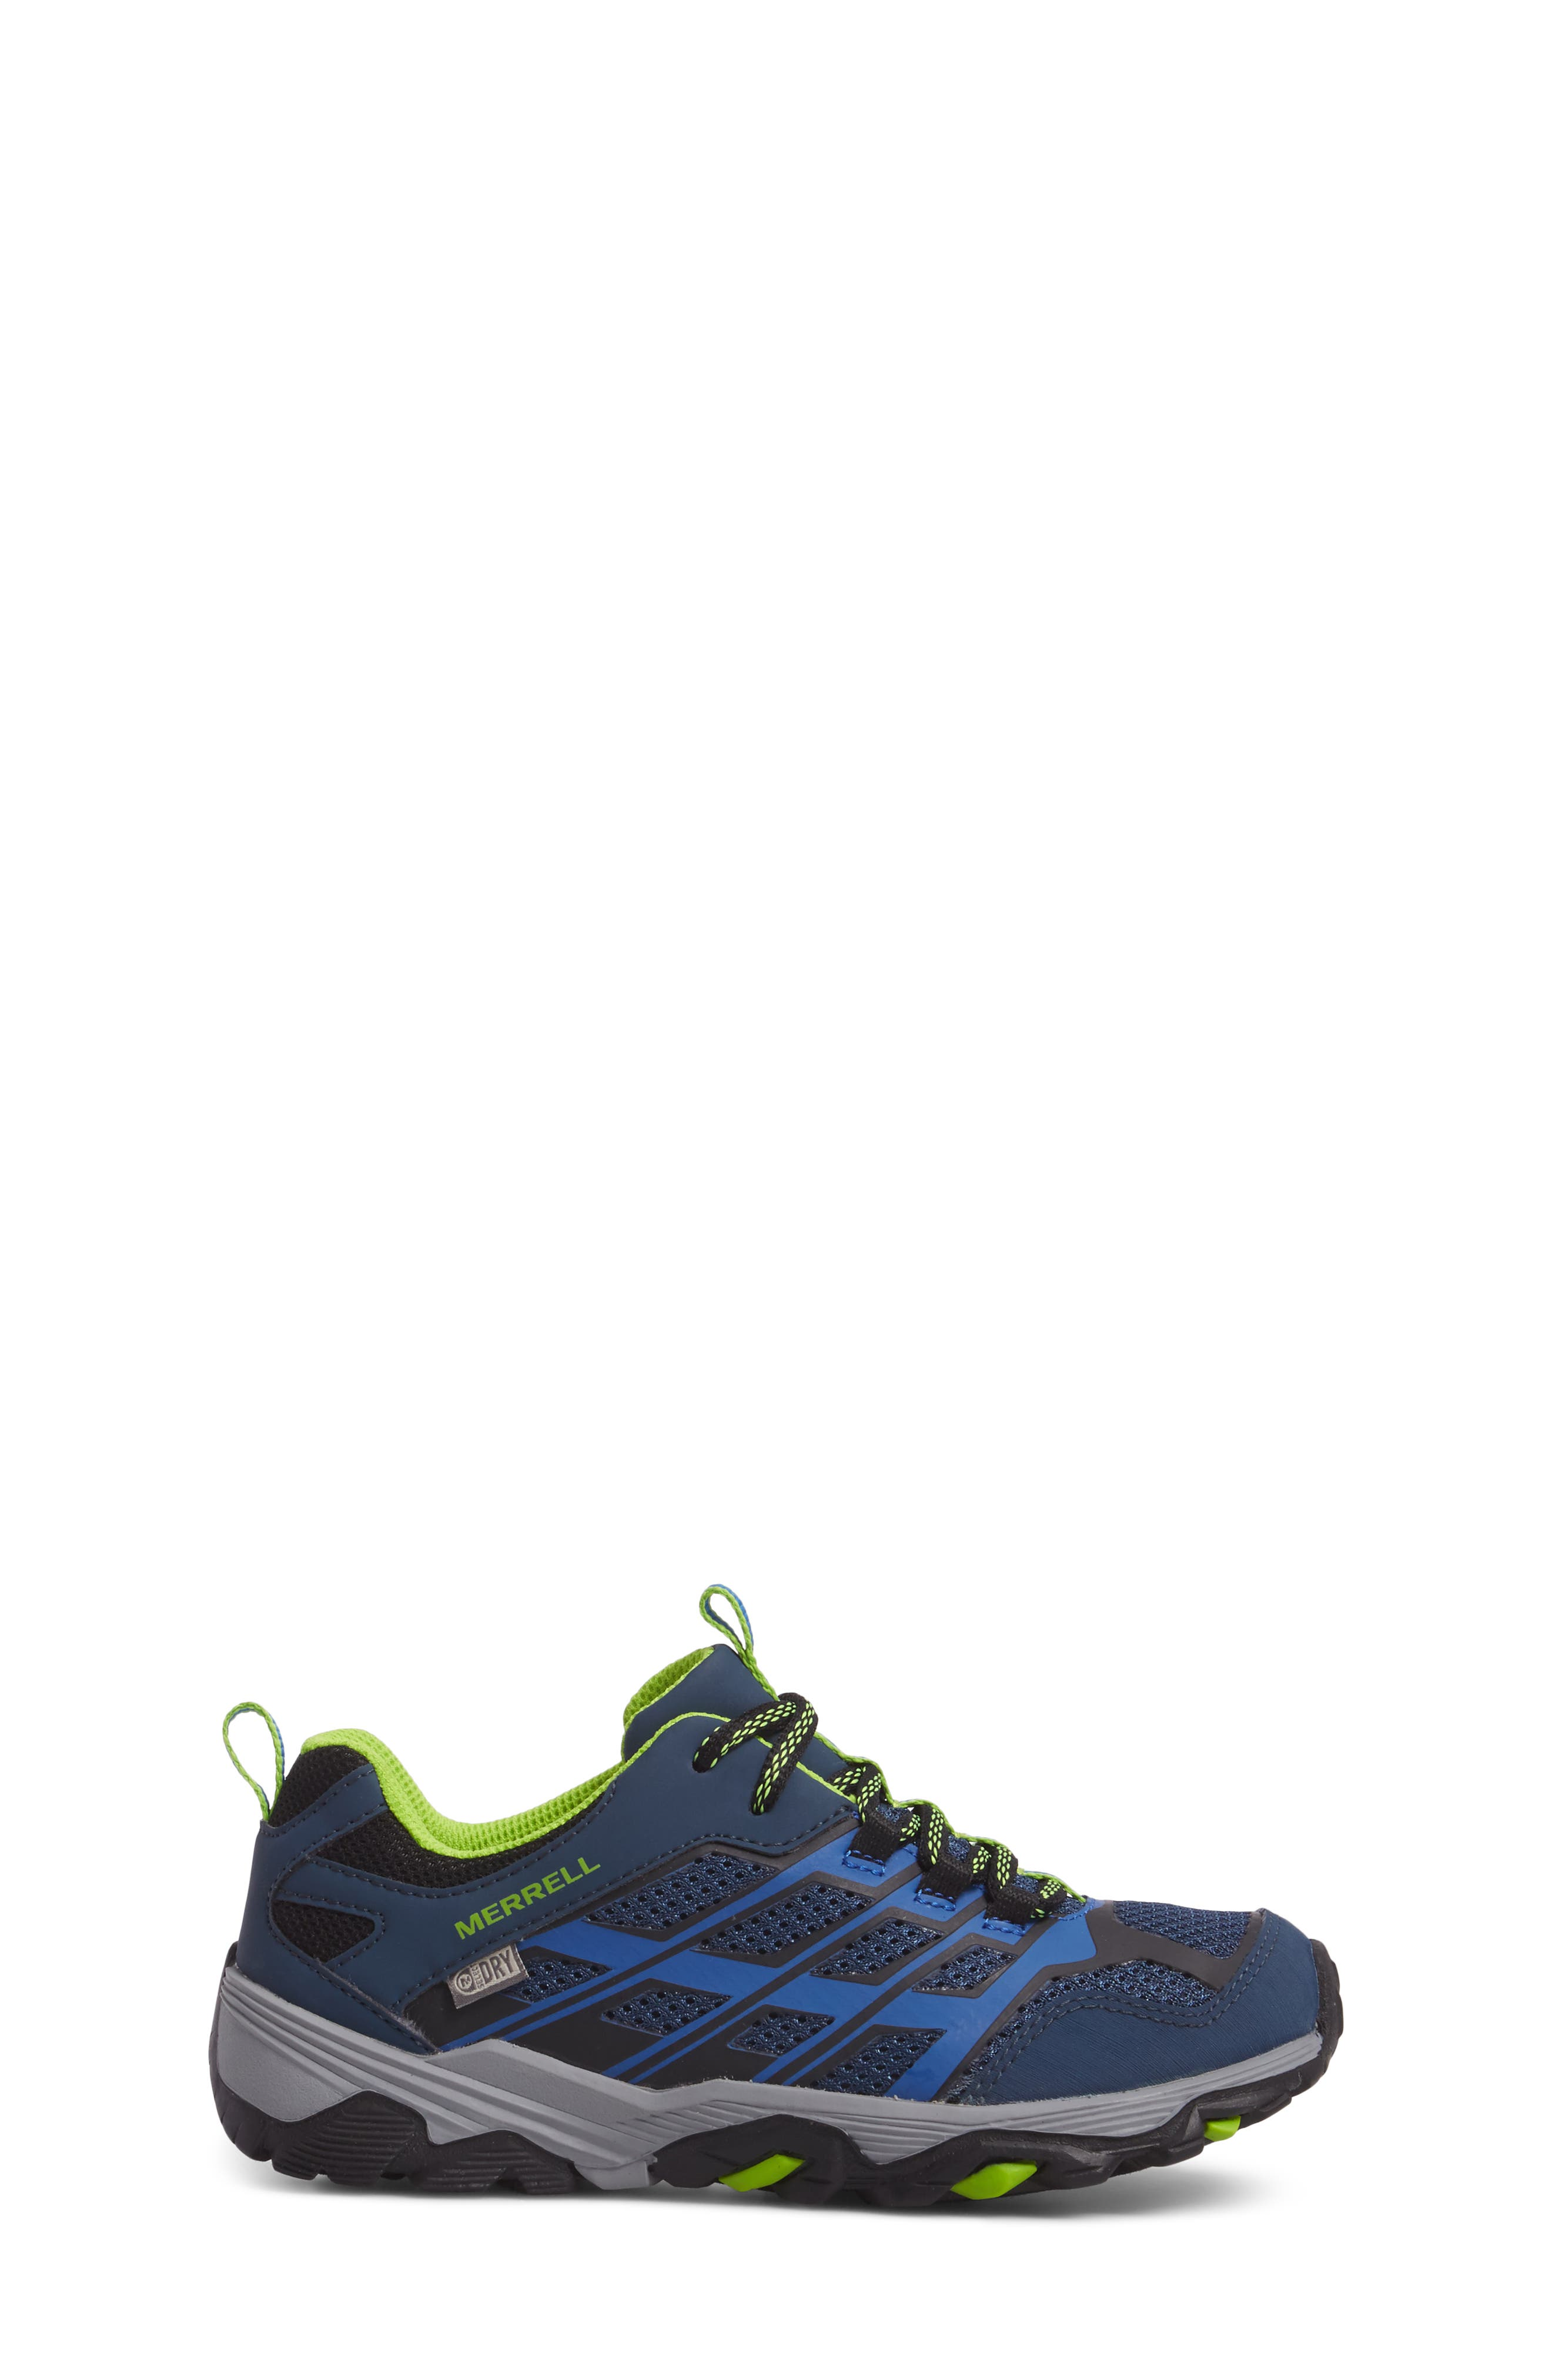 MERRELL, Moab FST Polar Low Waterproof Sneaker, Alternate thumbnail 3, color, NAVY/ BLUE